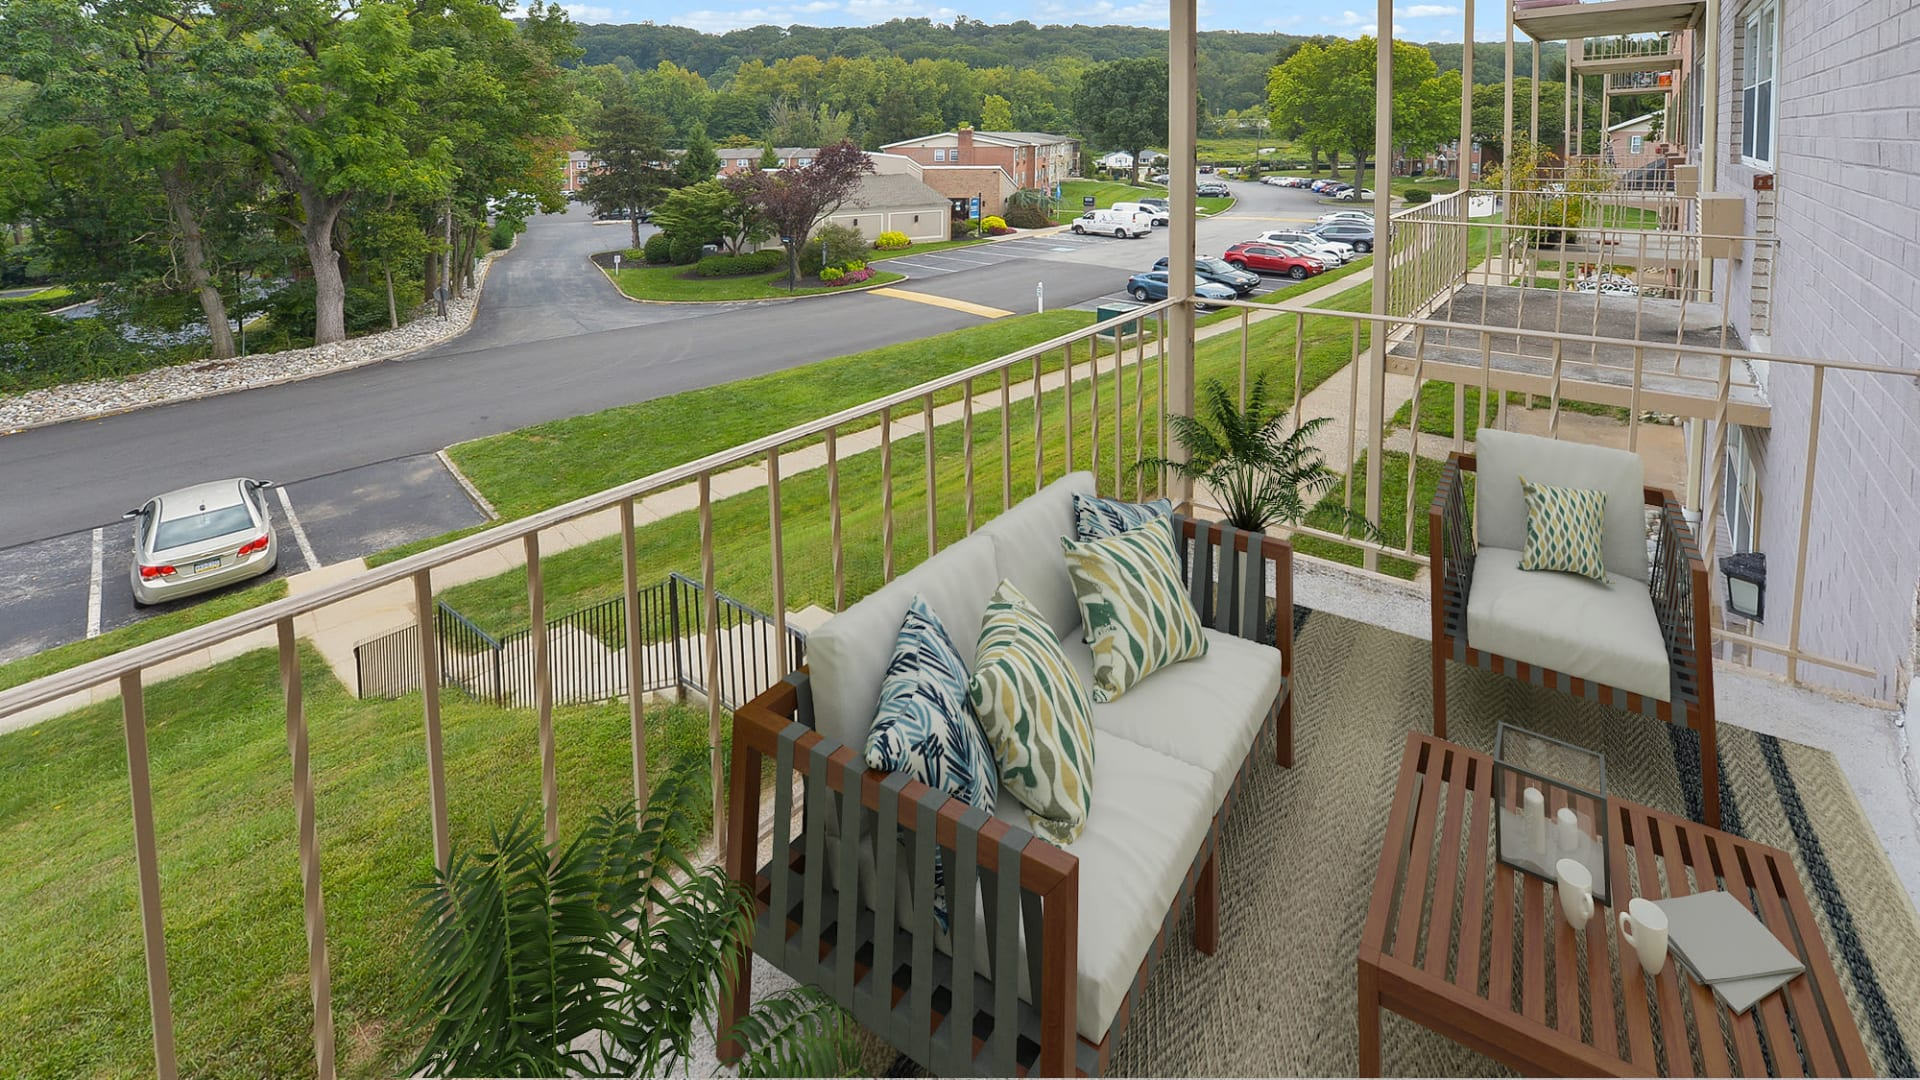 Private Balcony at Apartments in King of Prussia, Pennsylvania